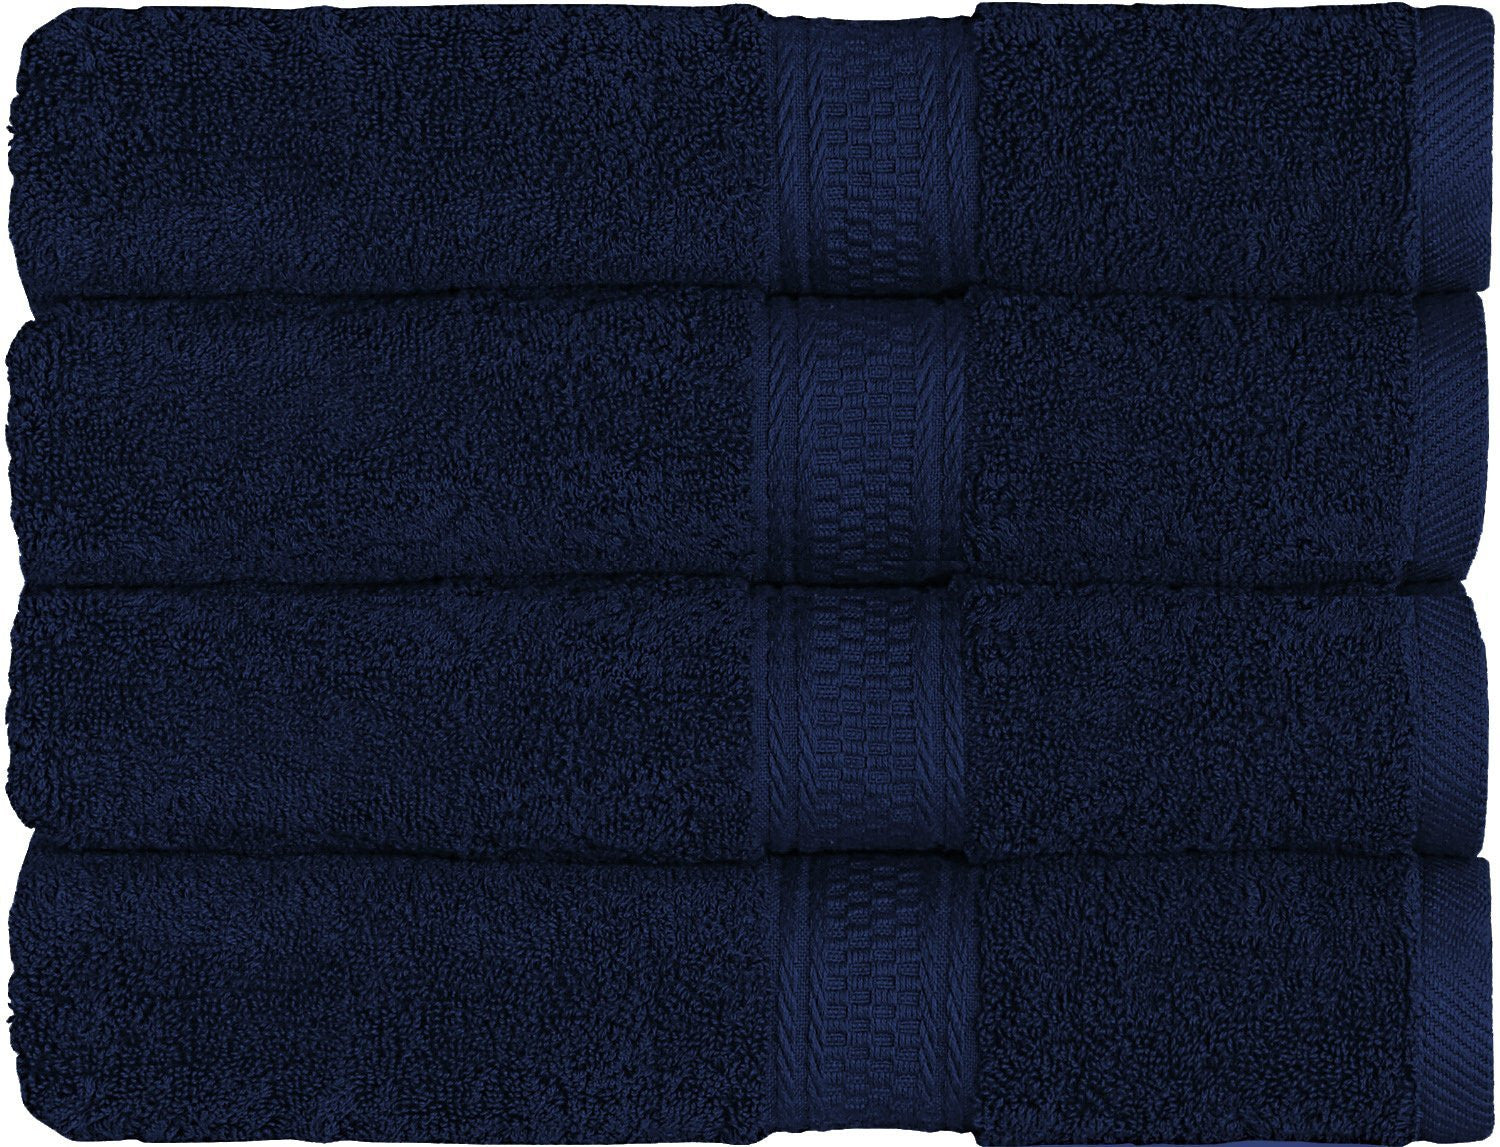 700 GSM Premium Bath Towels NAVY- 4 Pack